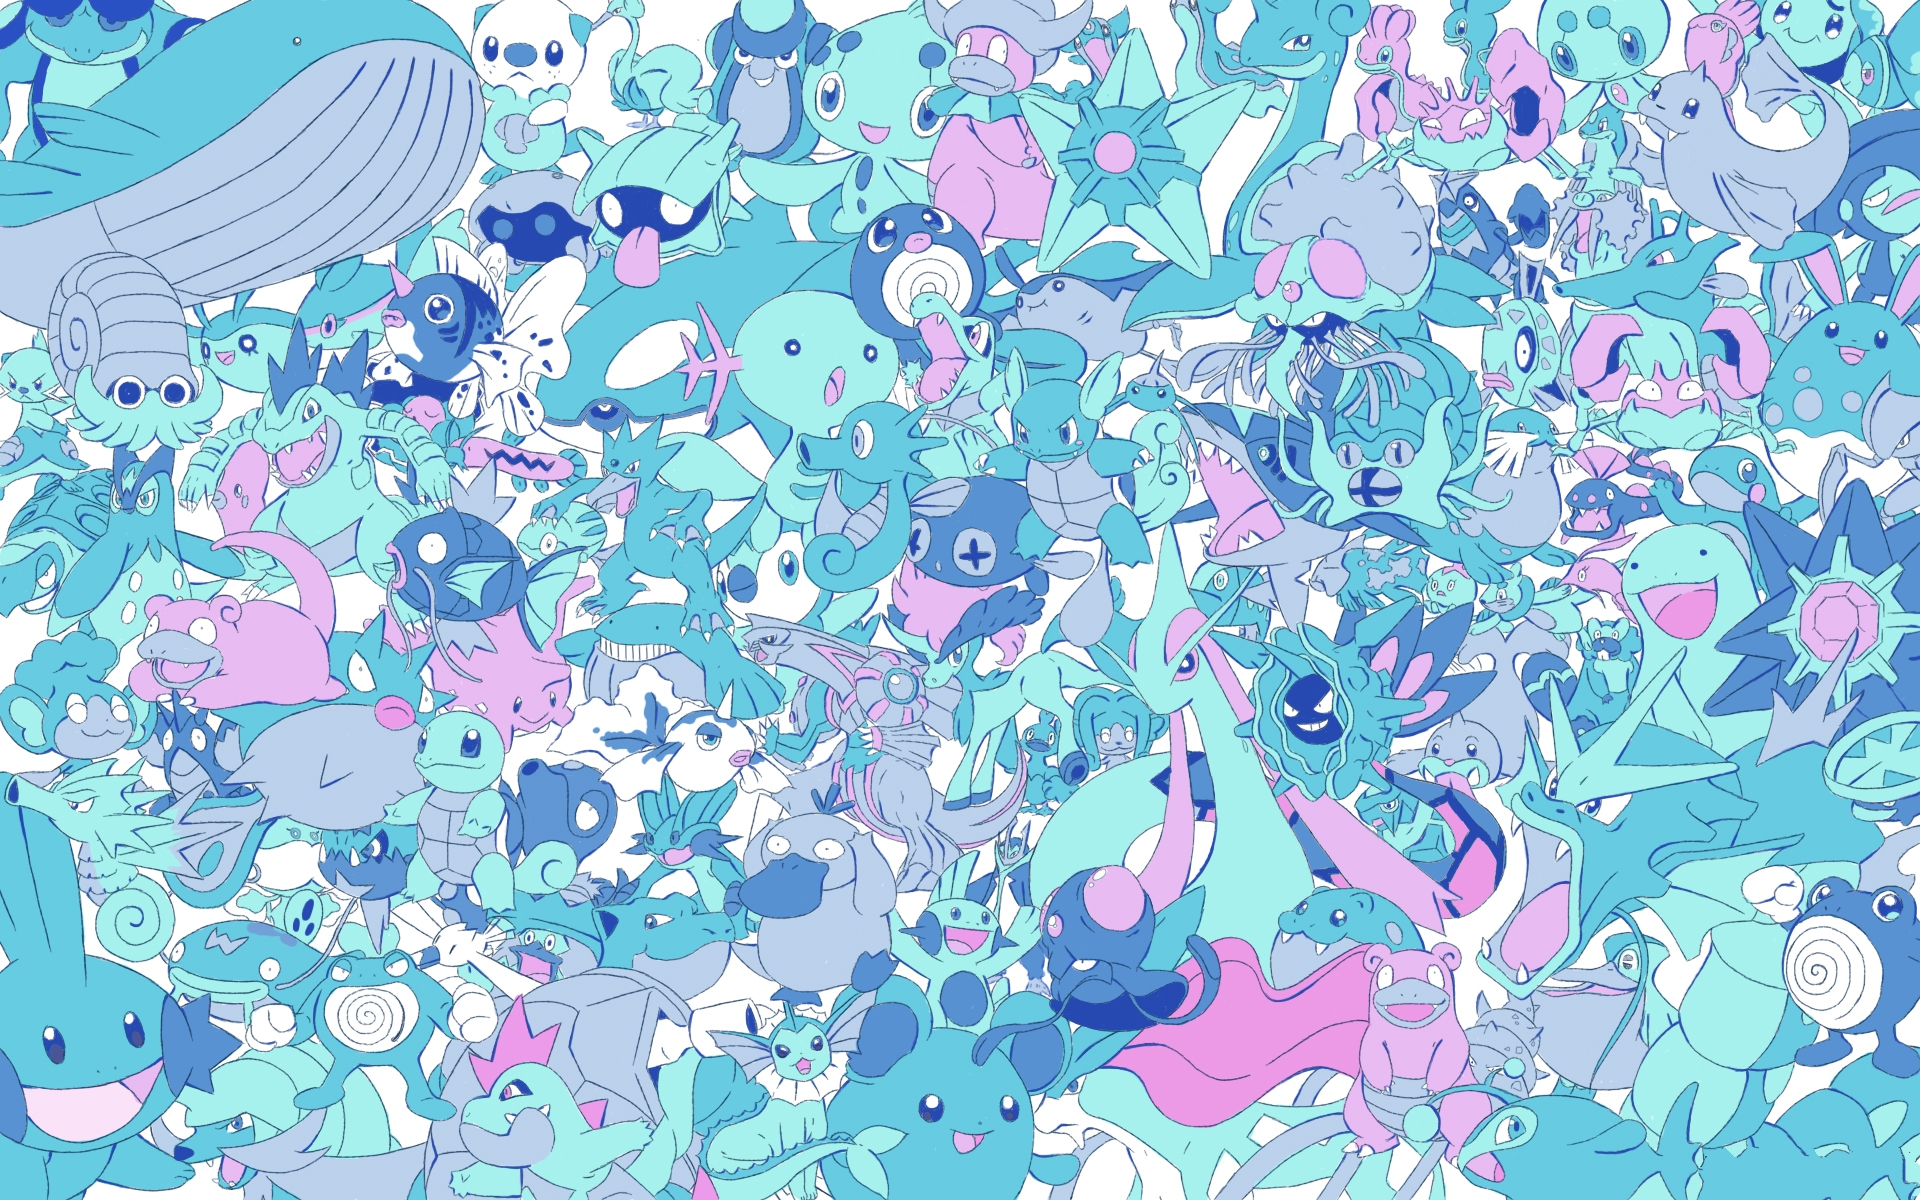 All Pokemon Wallpaper For Desktop Water Type Pokemon Background 1920x1200 Wallpaper Teahub Io